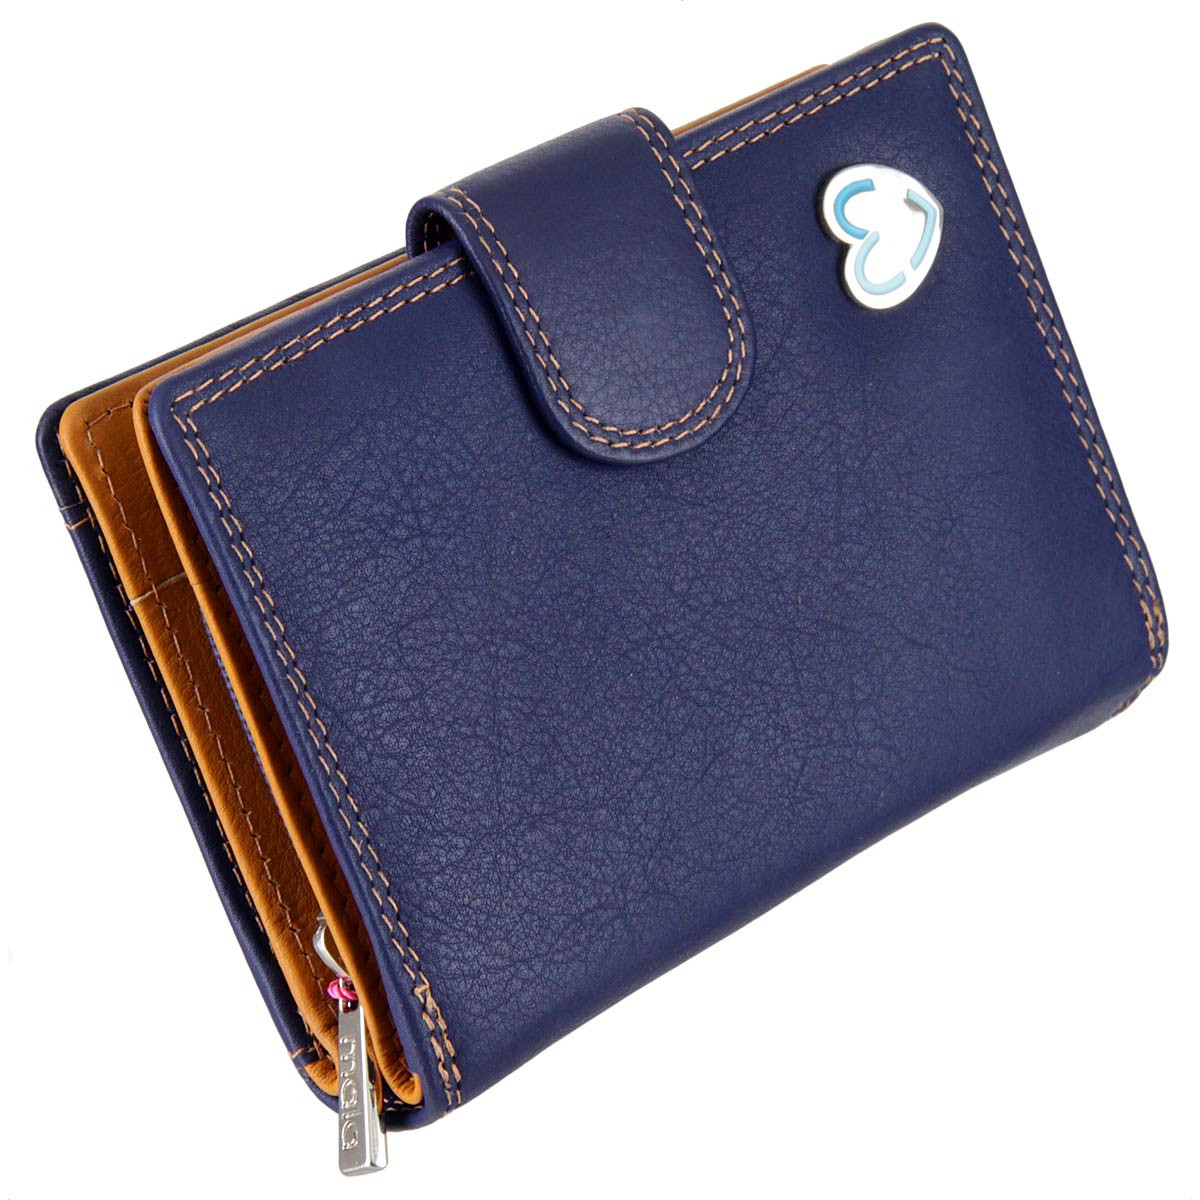 Wallet Purse with RFID Protection : Navy Tabitha 3118